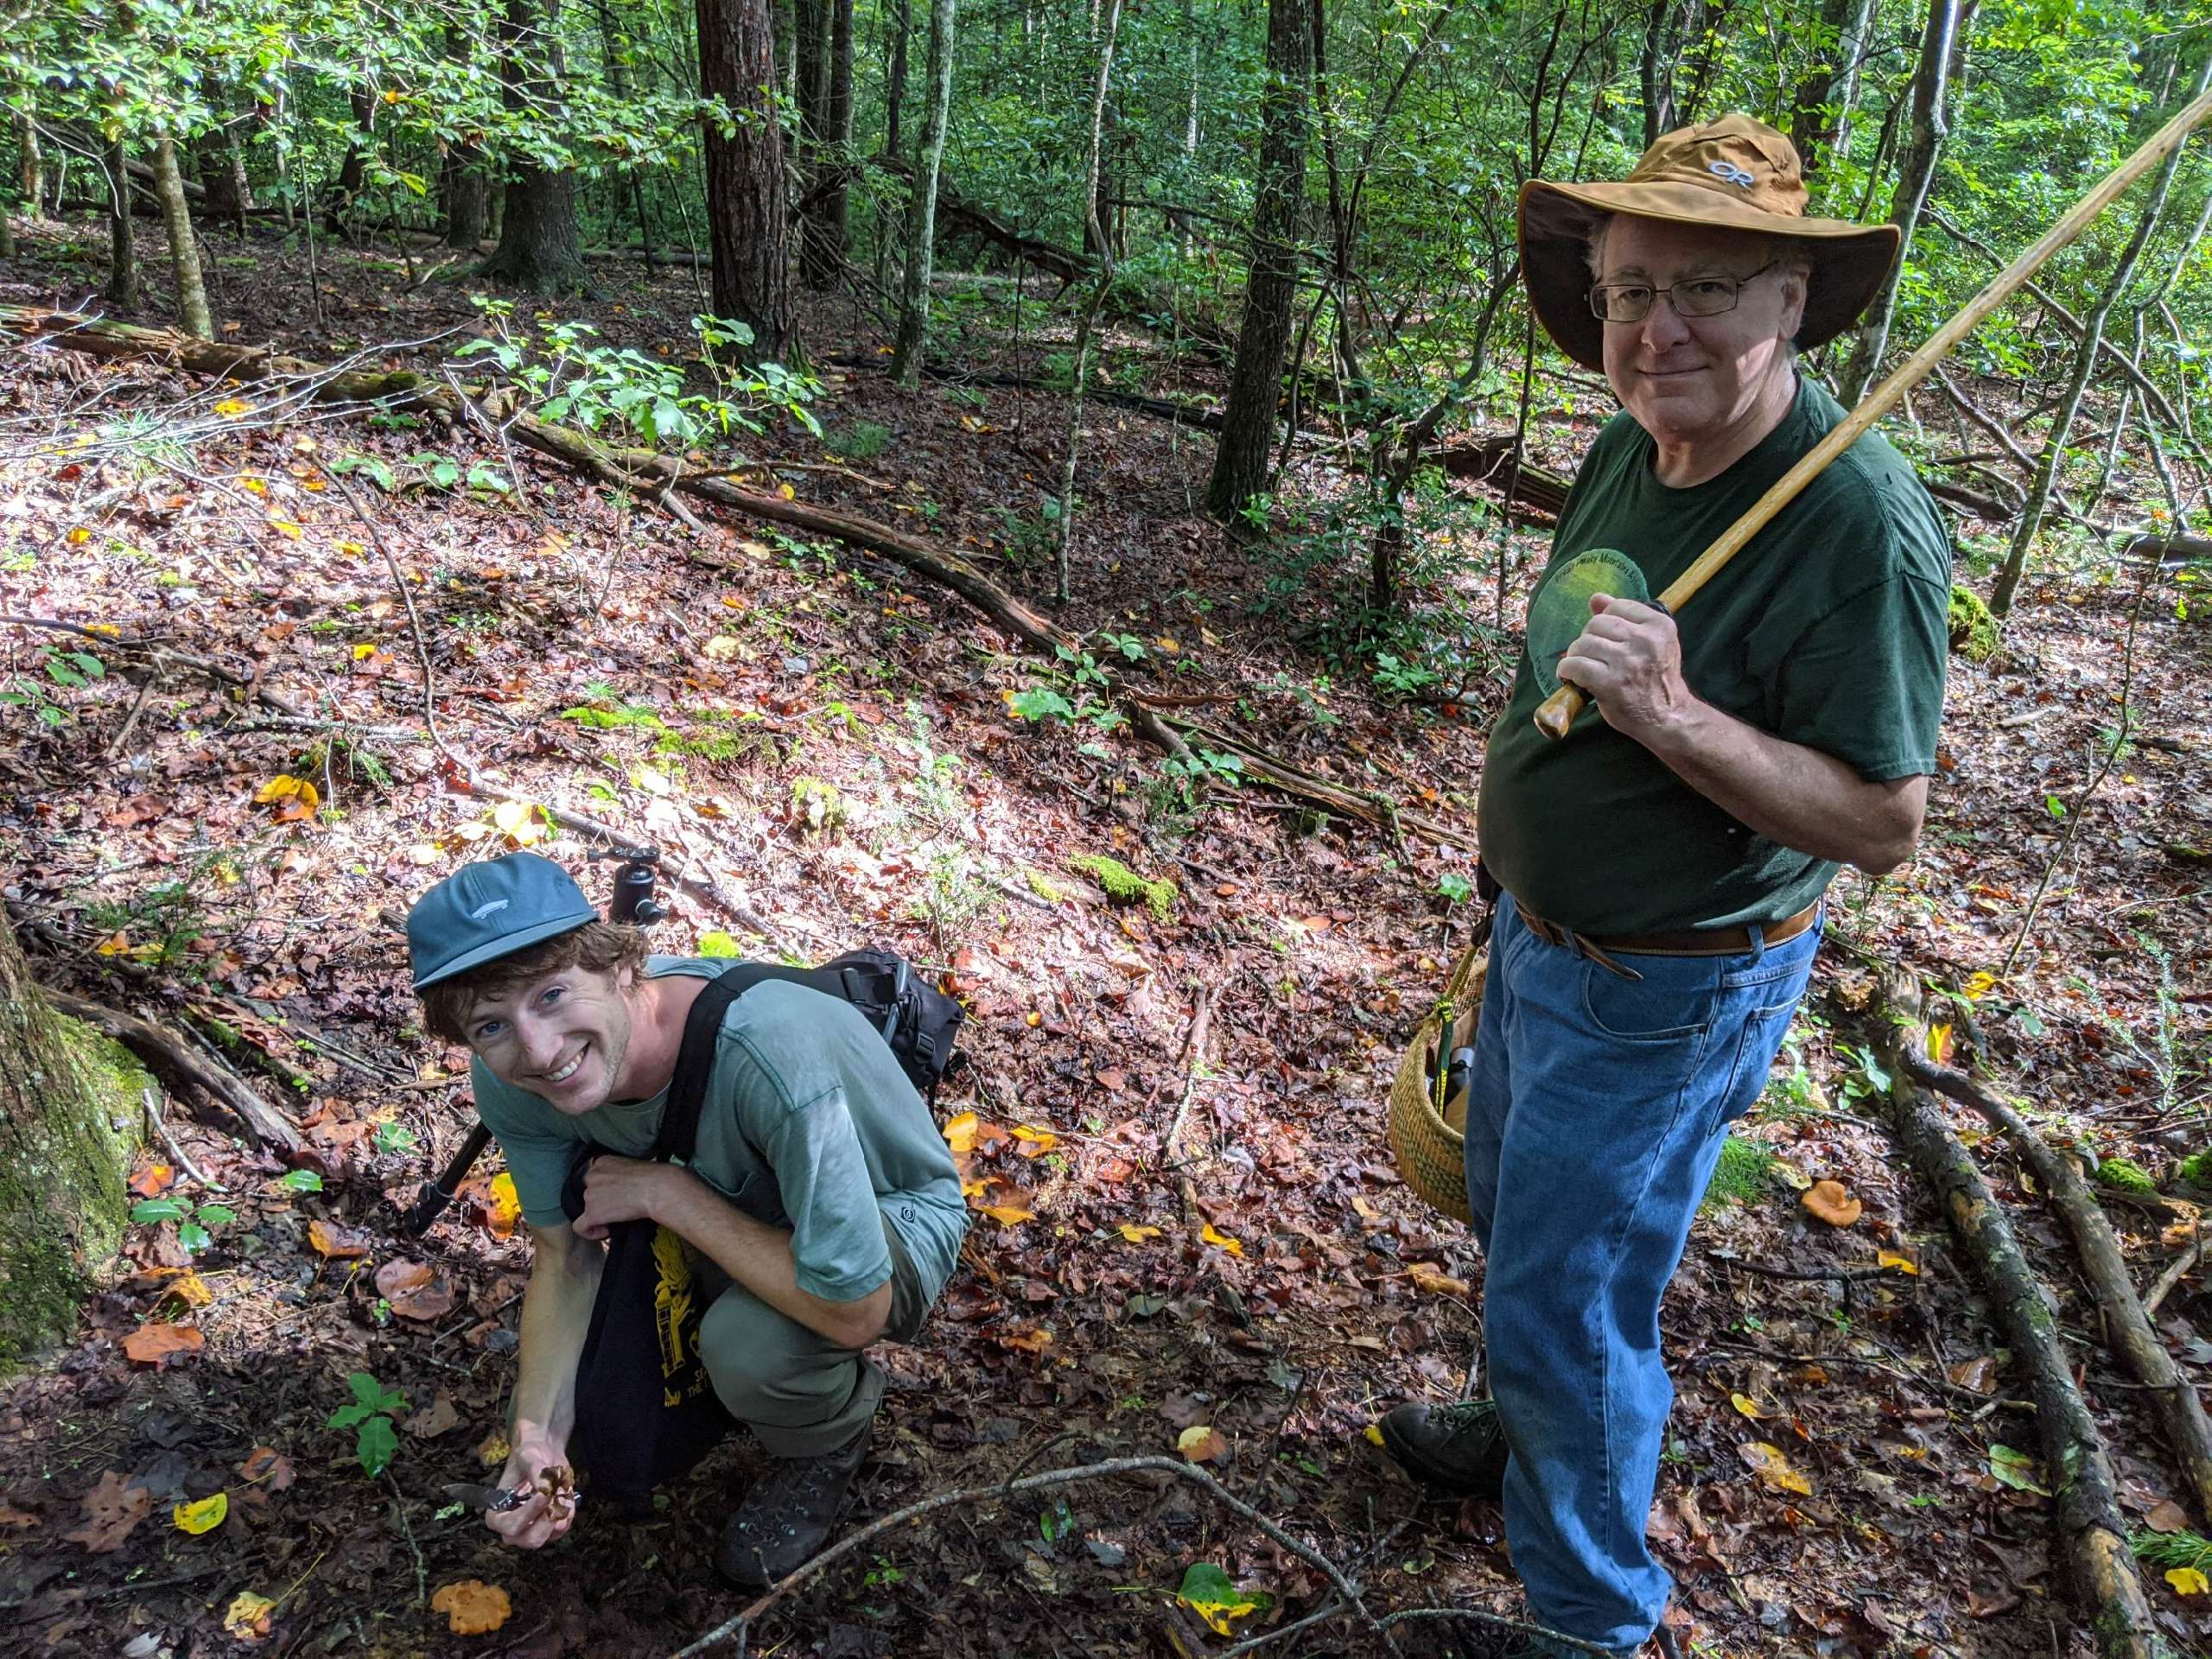 Mike Hopping of the Asheville Mushroom Club and Chance Noffsinger in the field. Photo courtesy of Brandon Matheny